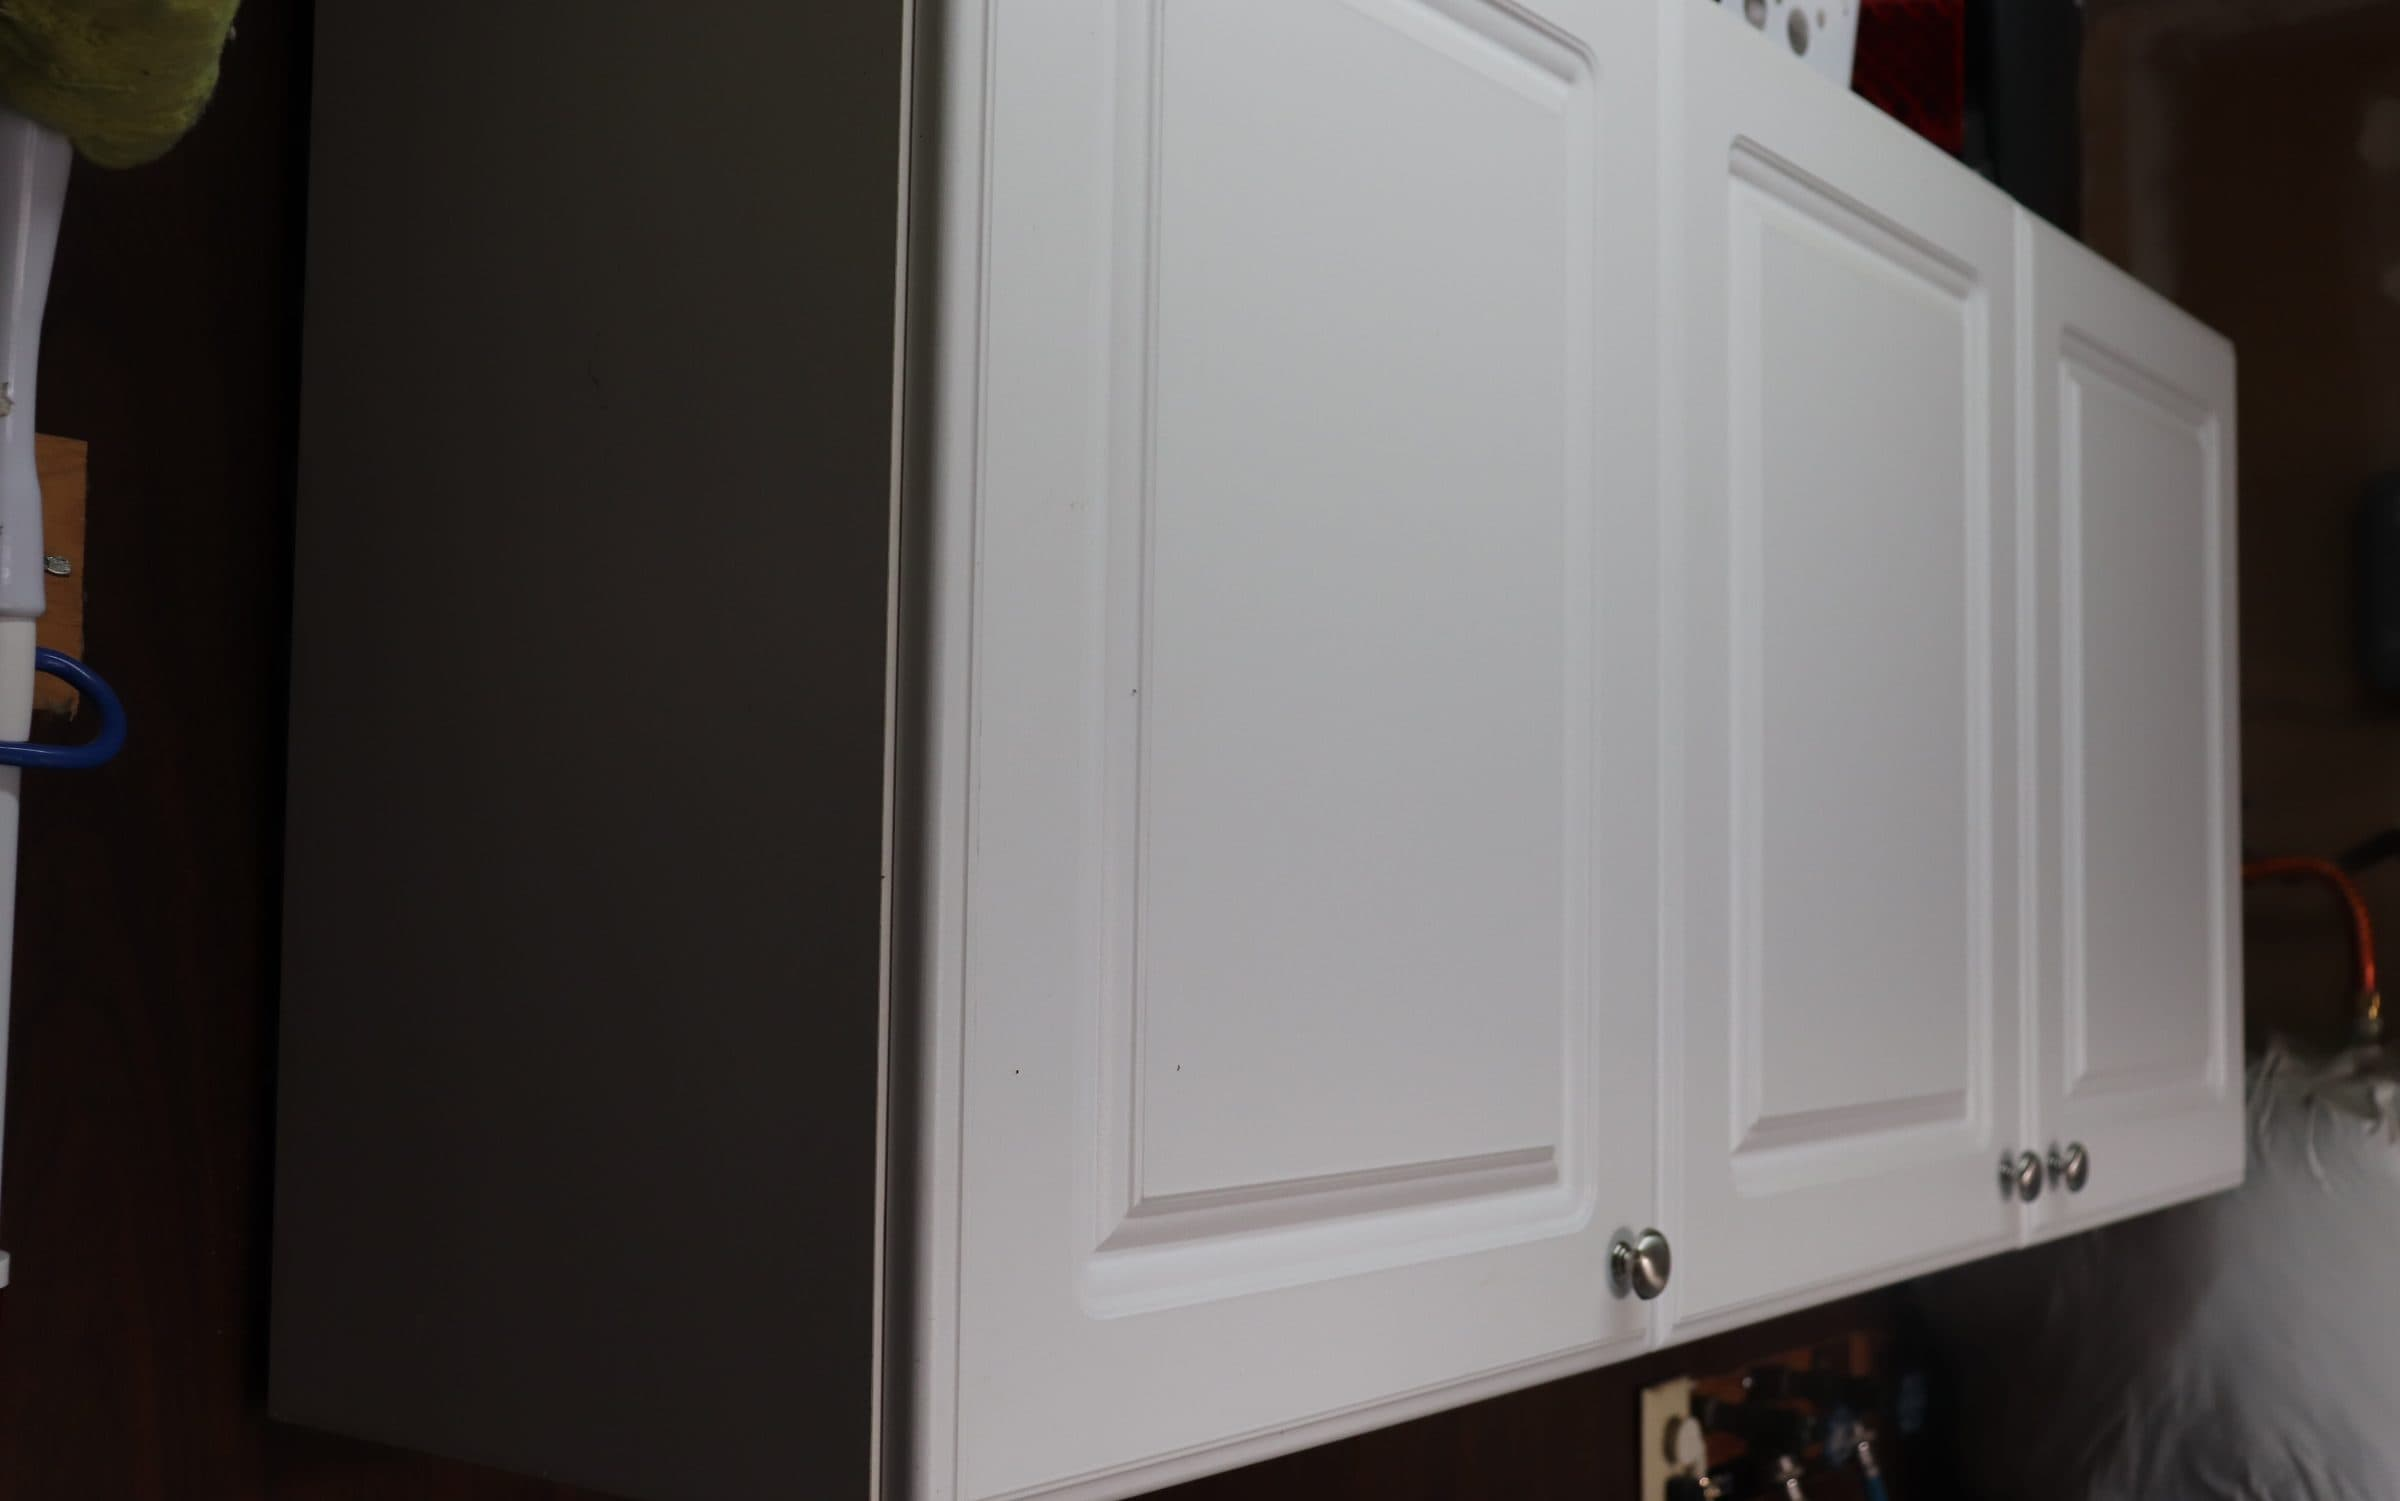 white cabinets with brushed nickel hardware against a dark paneled wall